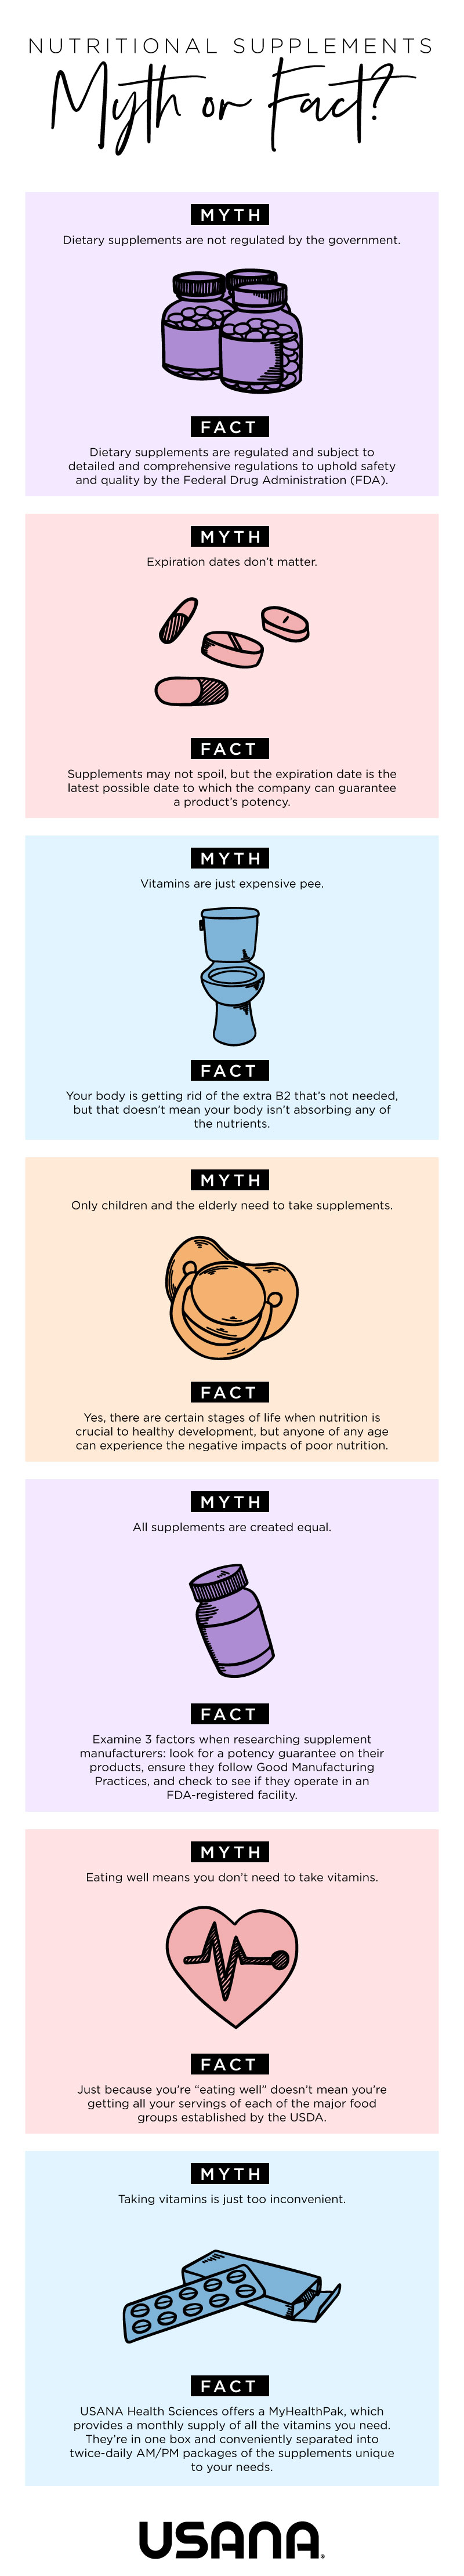 nutritional supplements: infographic